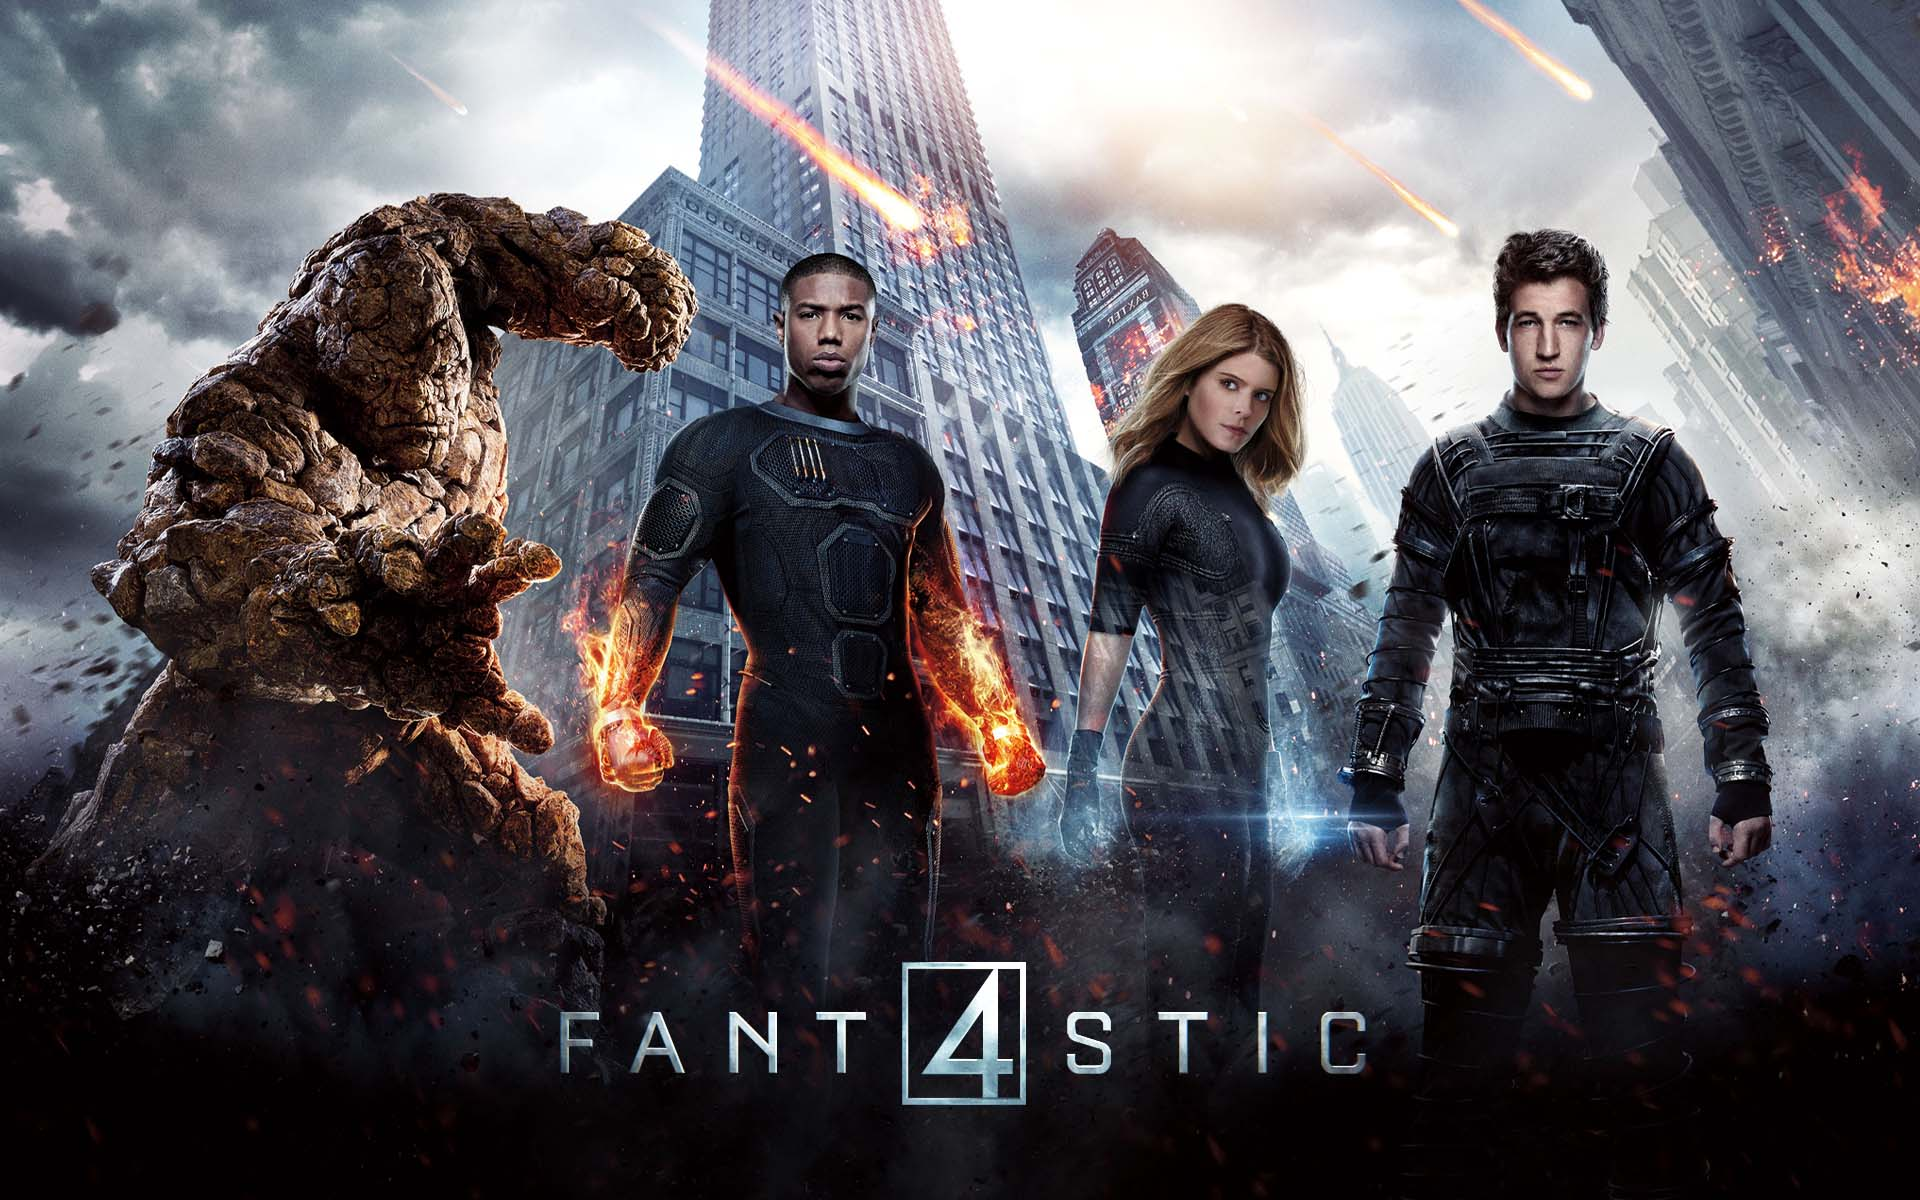 fantastic-four-2015-poster-movie-wallpaper-thing-human ...